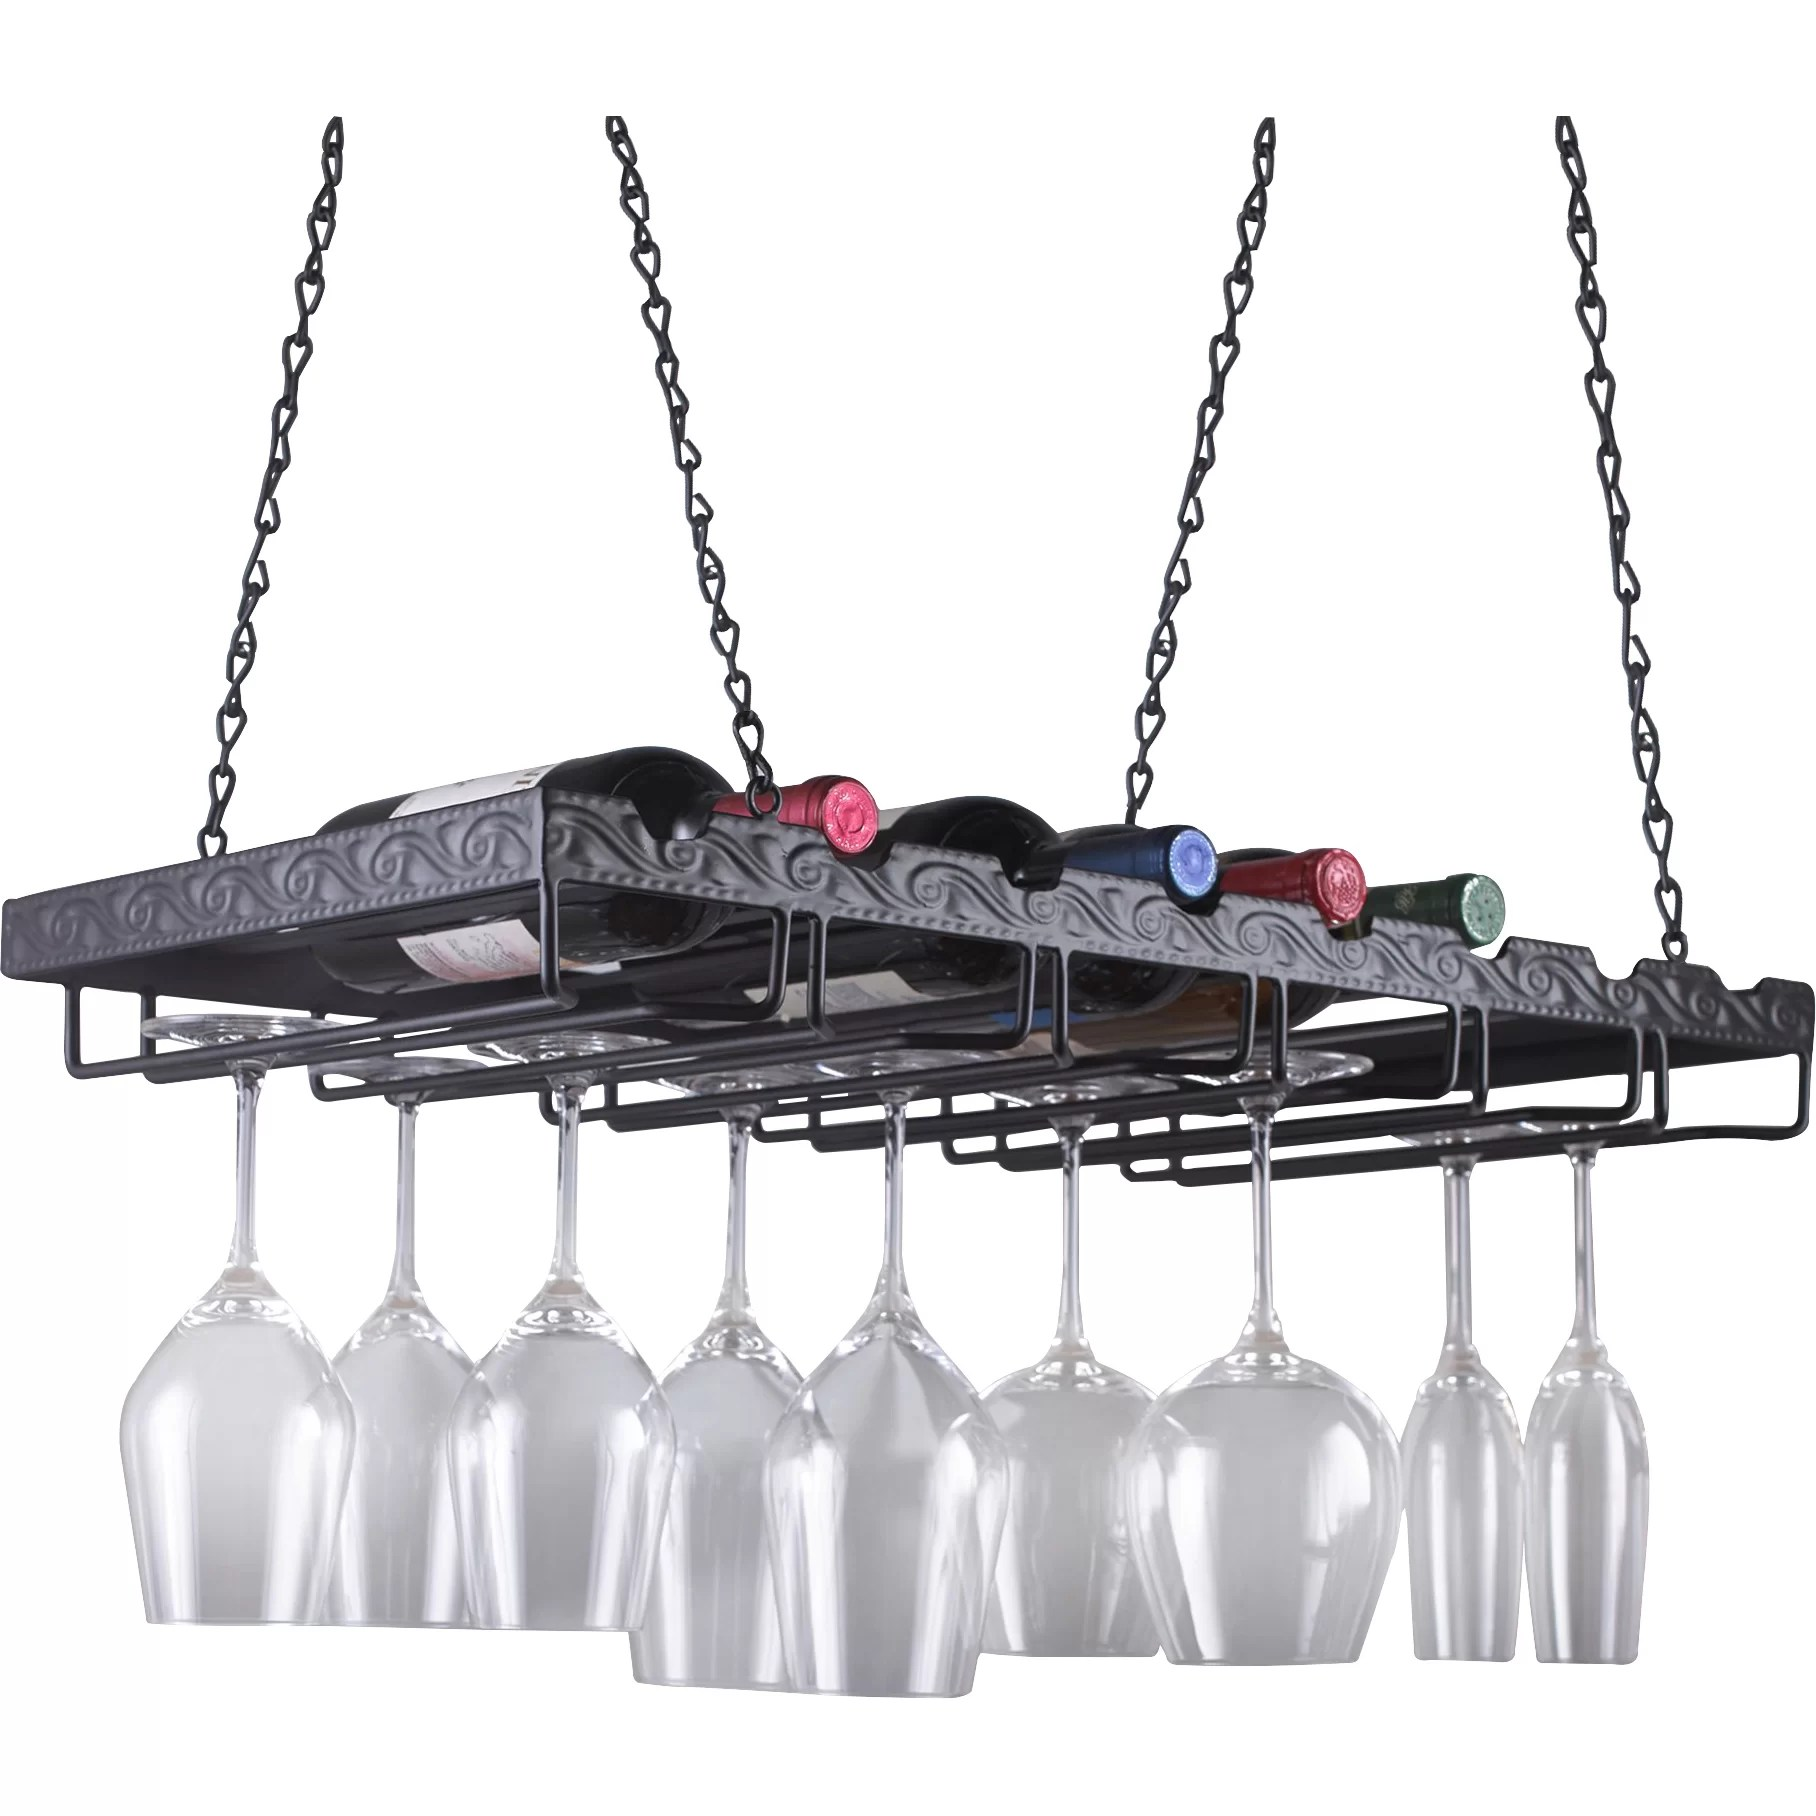 Hanging Bottle Rack Wine Enthusiast Companies 8 Bottle Hanging Wine Rack